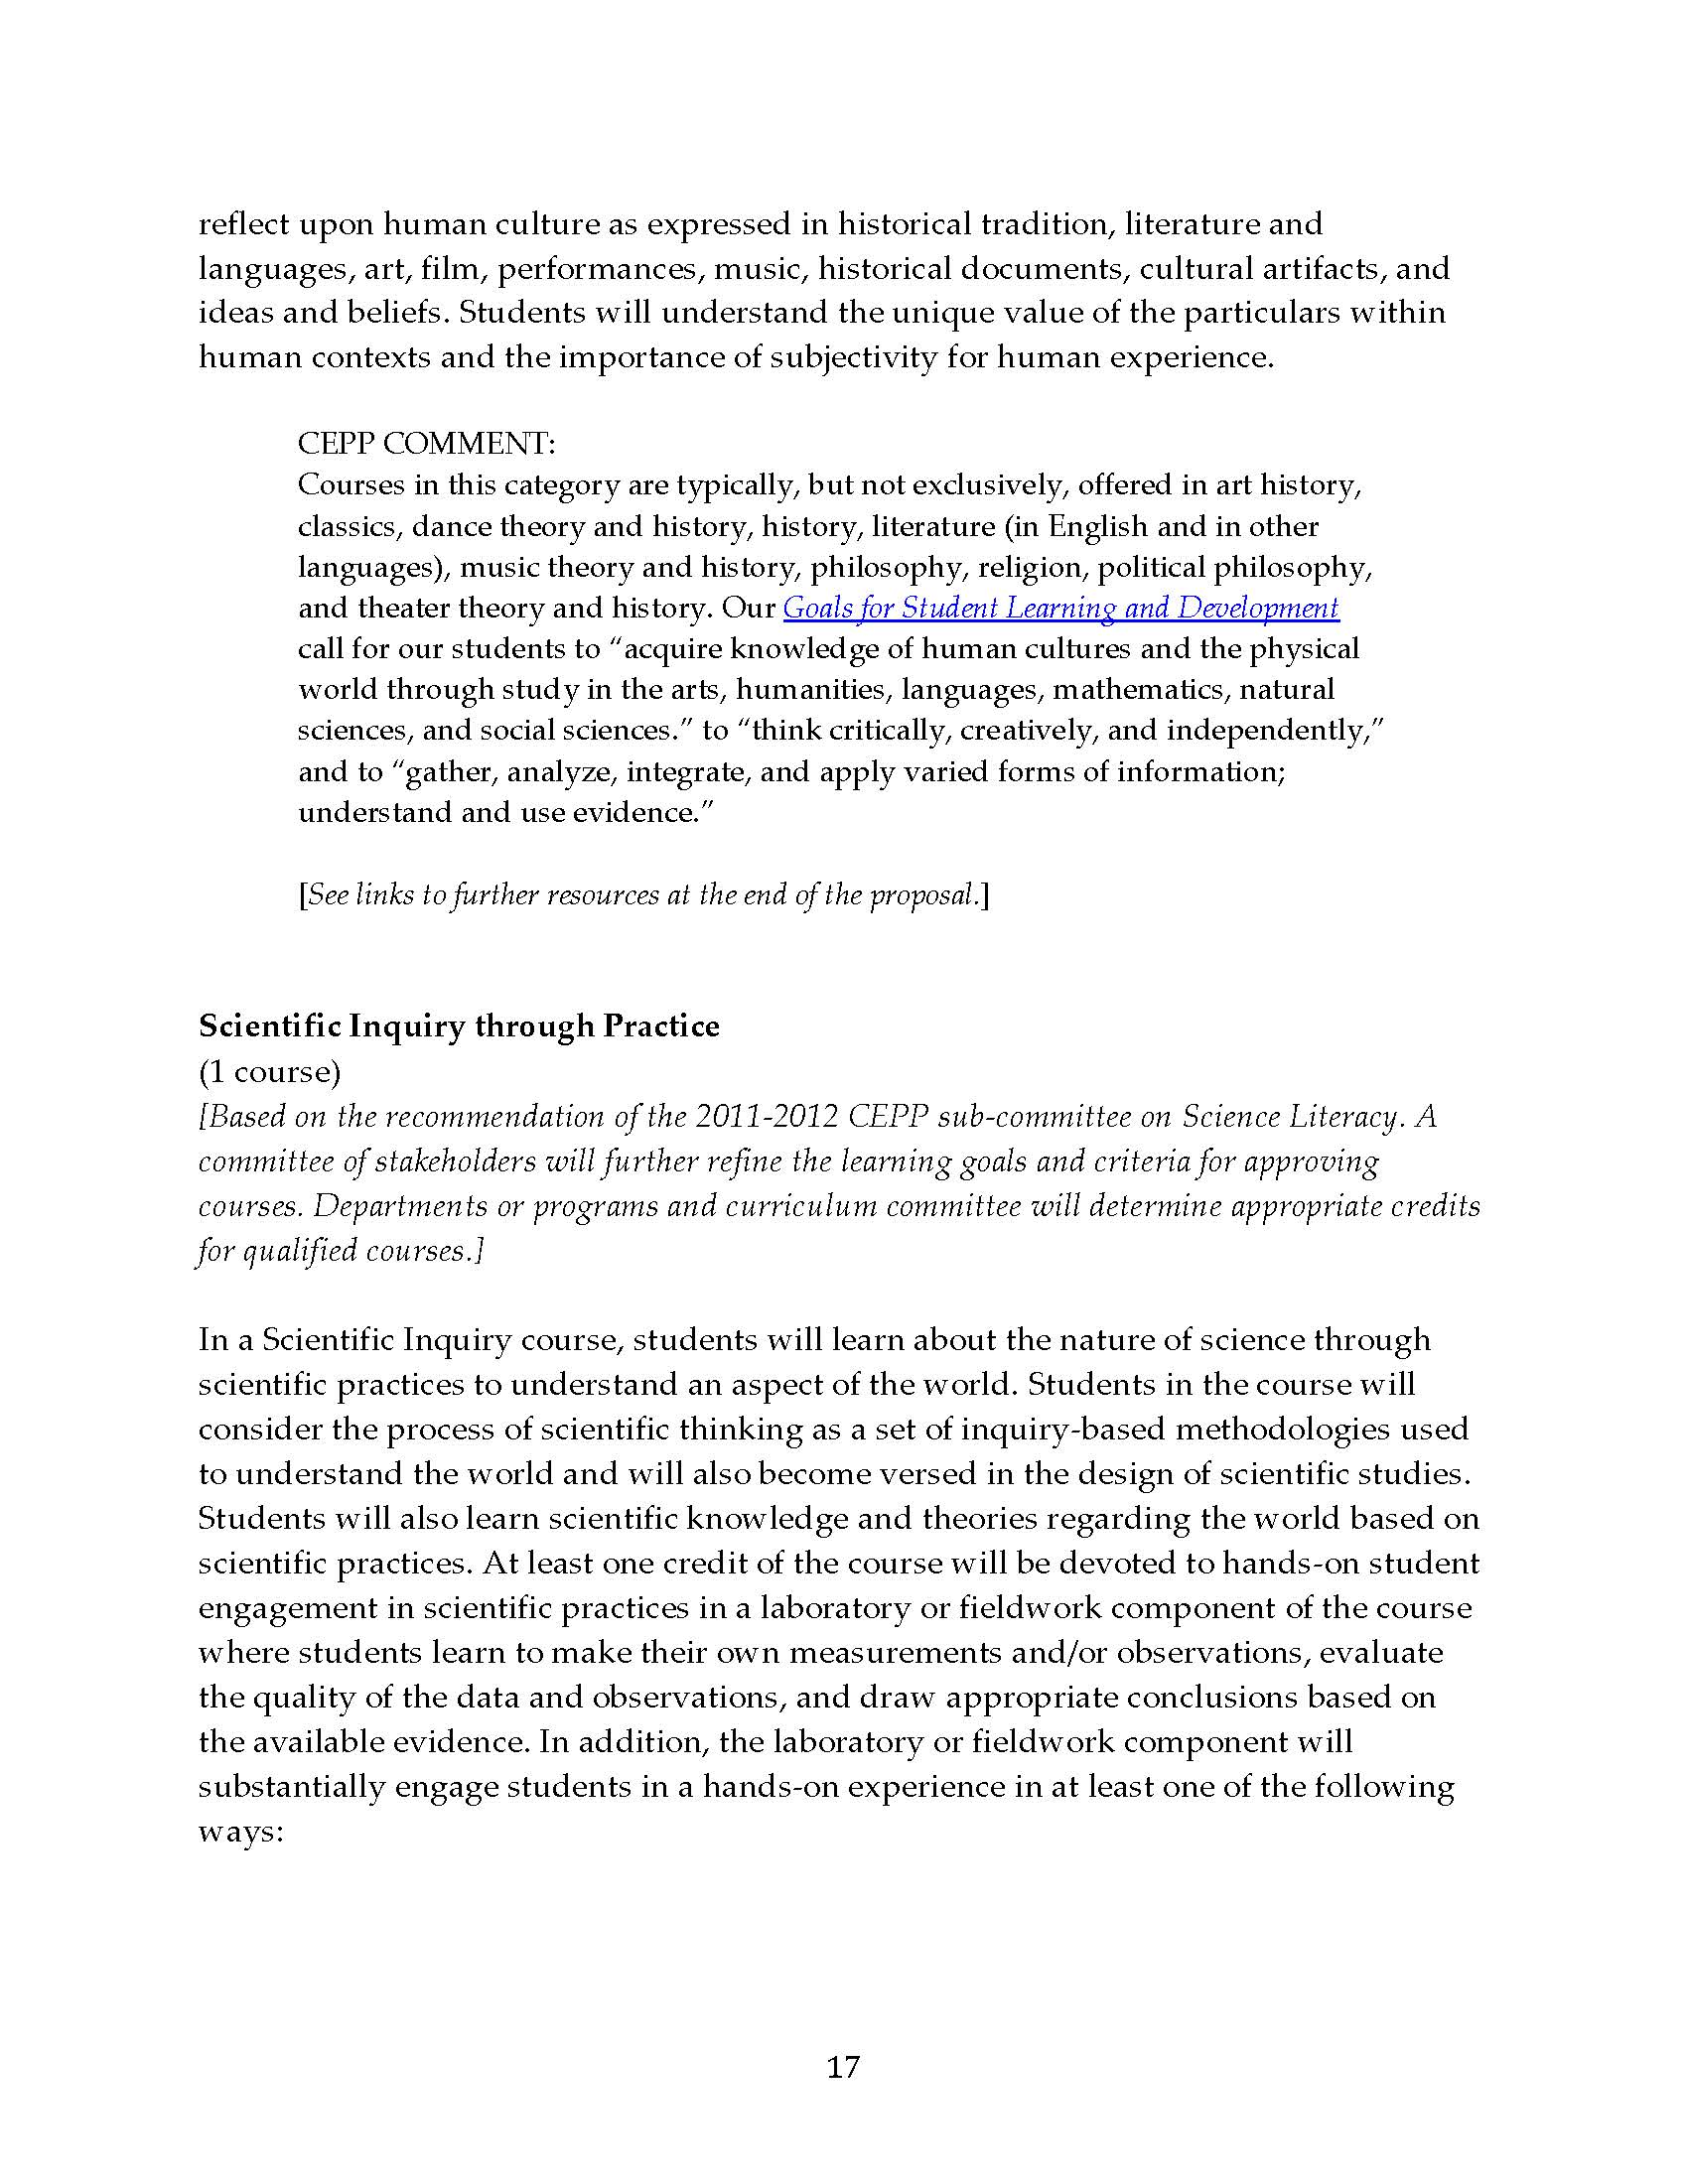 General Education Proposal February 28 2017_Page_17.jpg